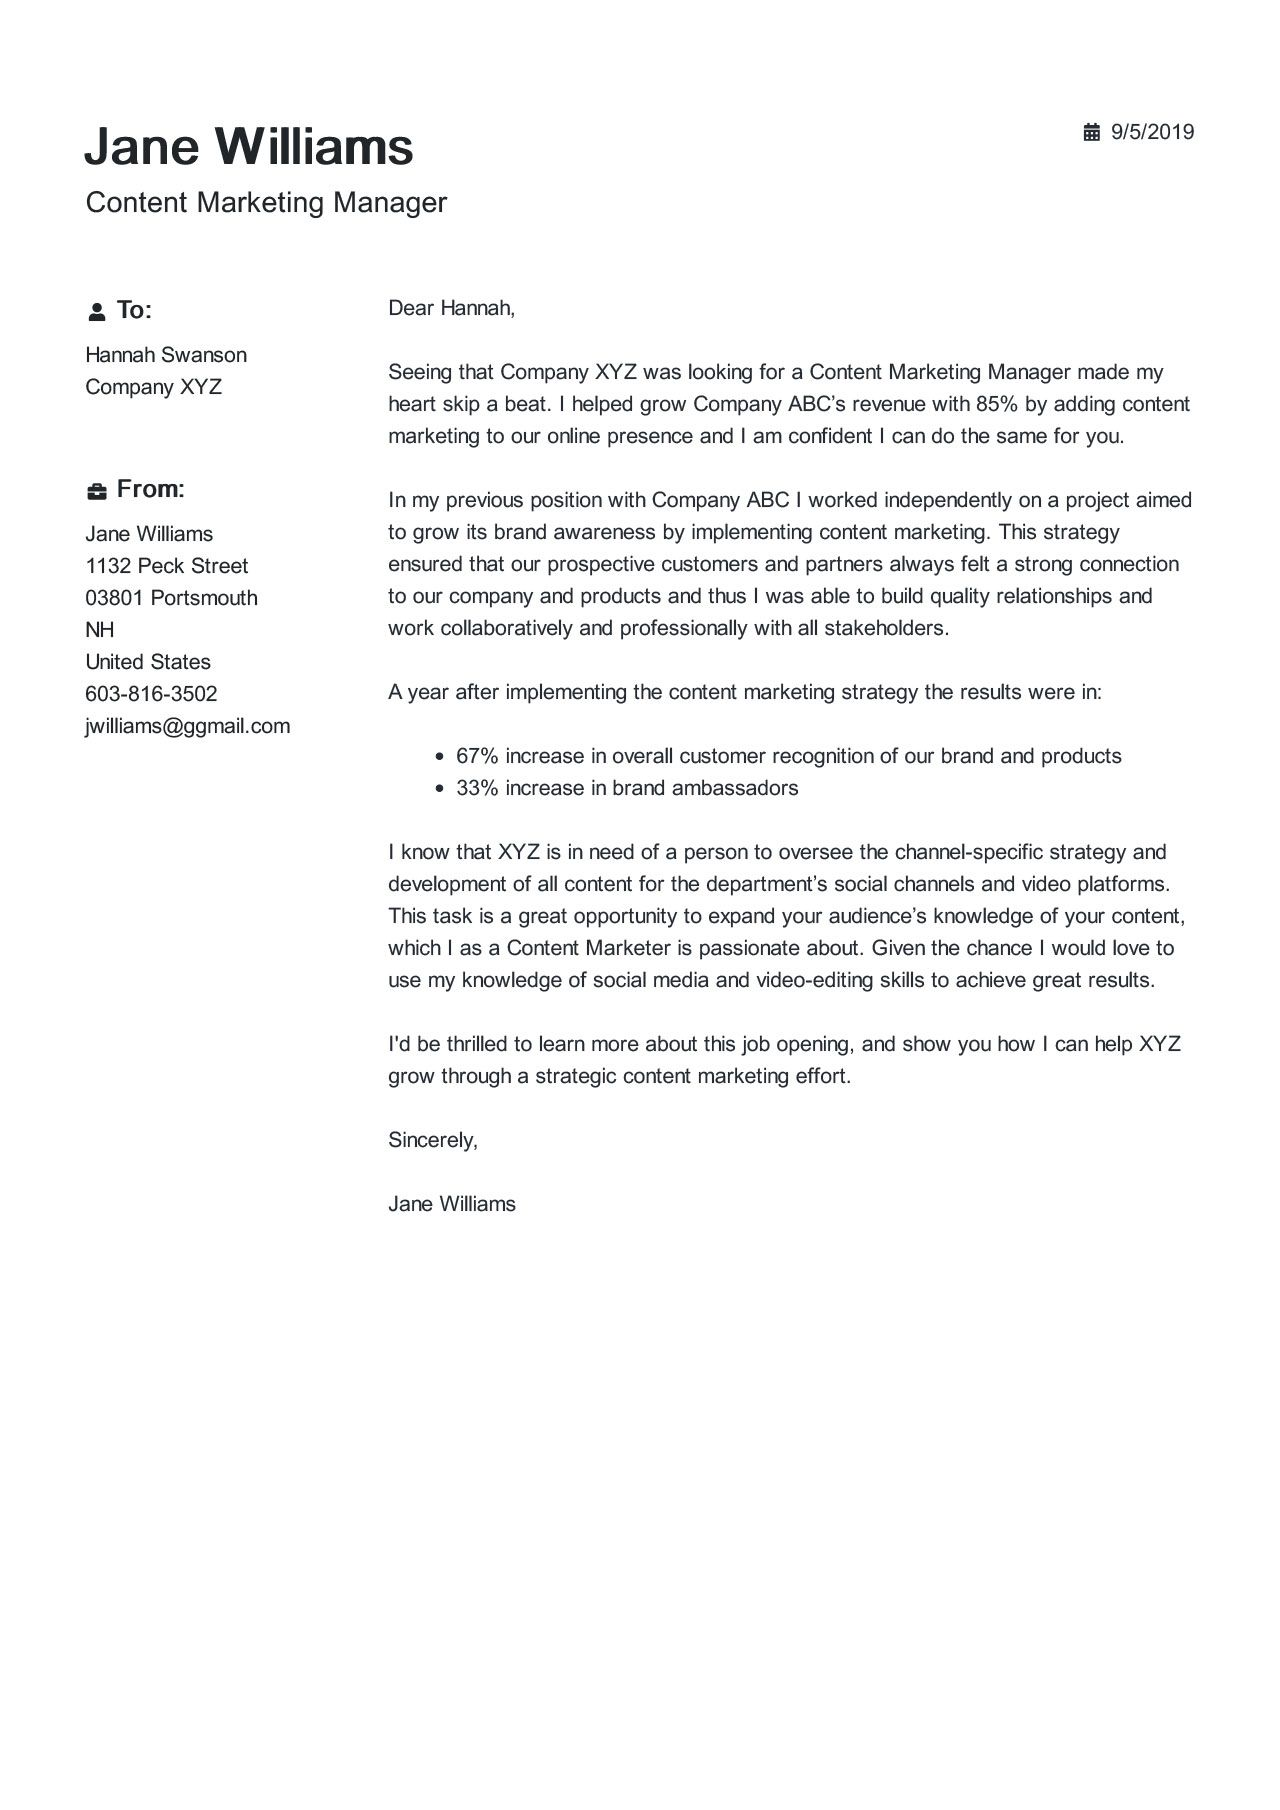 Content Marketing Manager Cover Letter Example in 2020